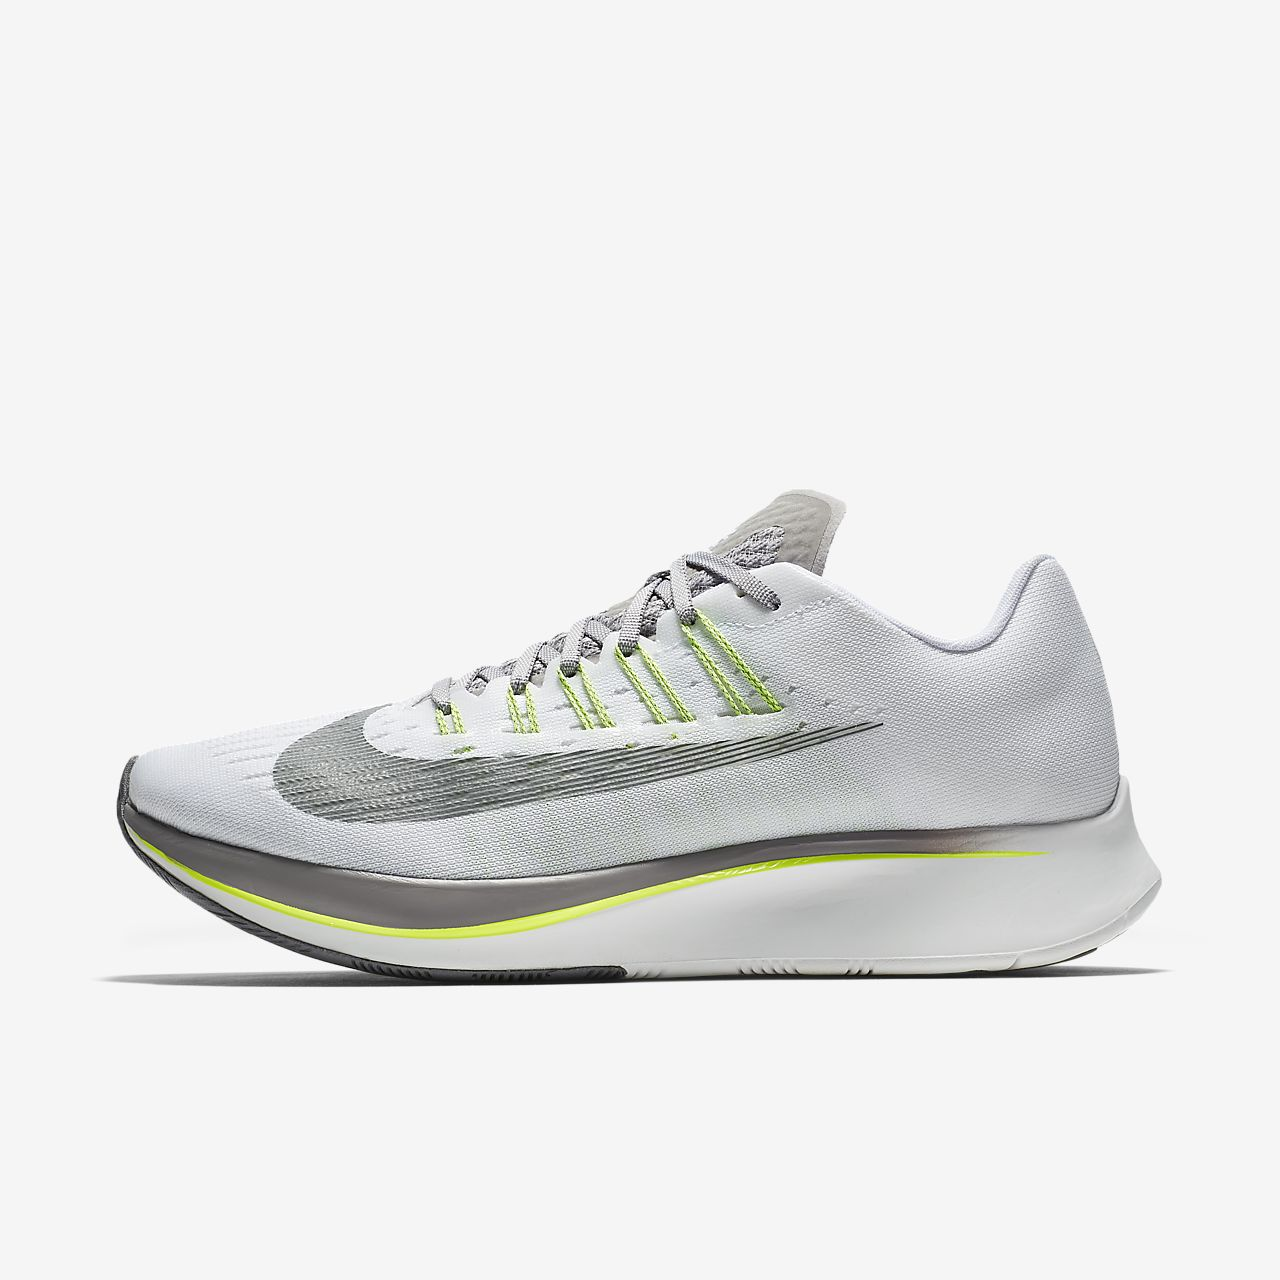 fdc3ab26e12f94 Nike Zoom Fly Men s Running Shoe. Nike.com